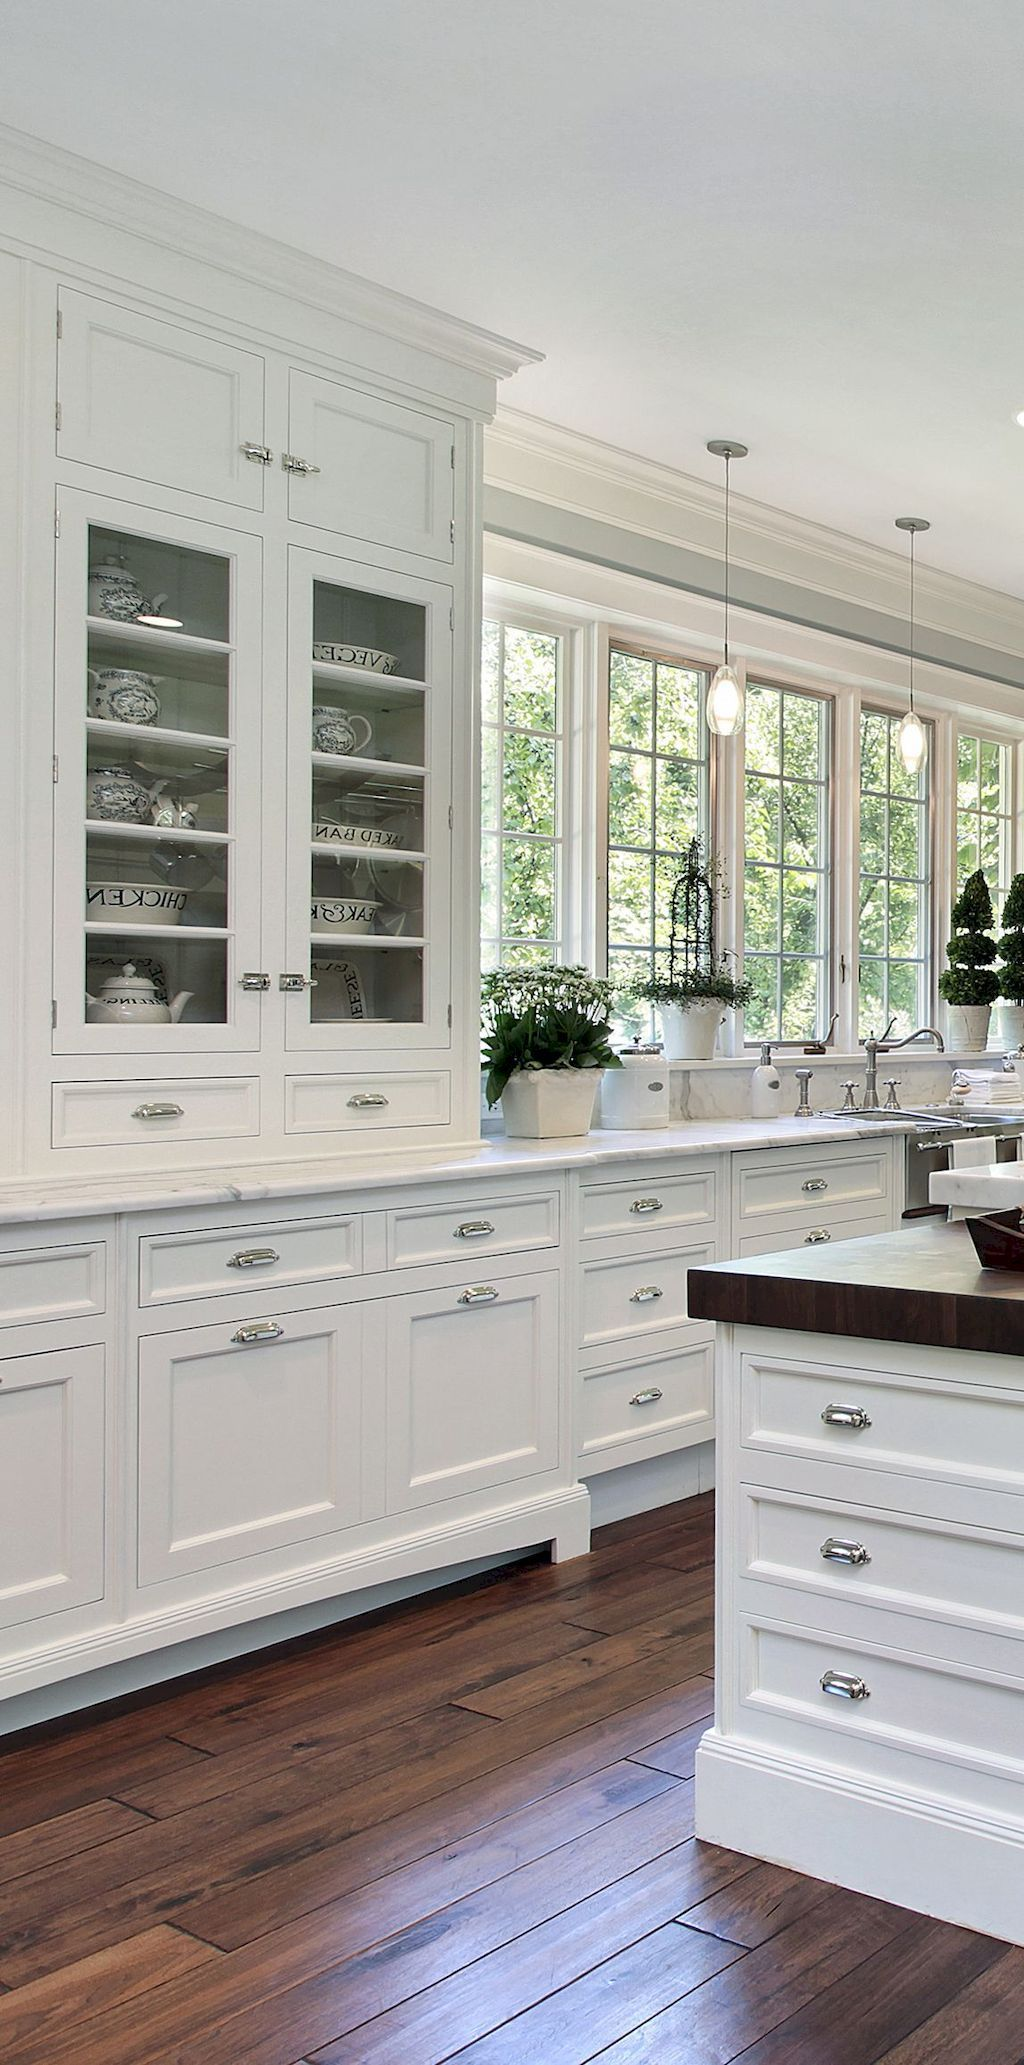 Pin By Trends On Kitchens Farmhouse Style Kitchen Kitchen Cabinet Design Kitchen Cabinets Decor